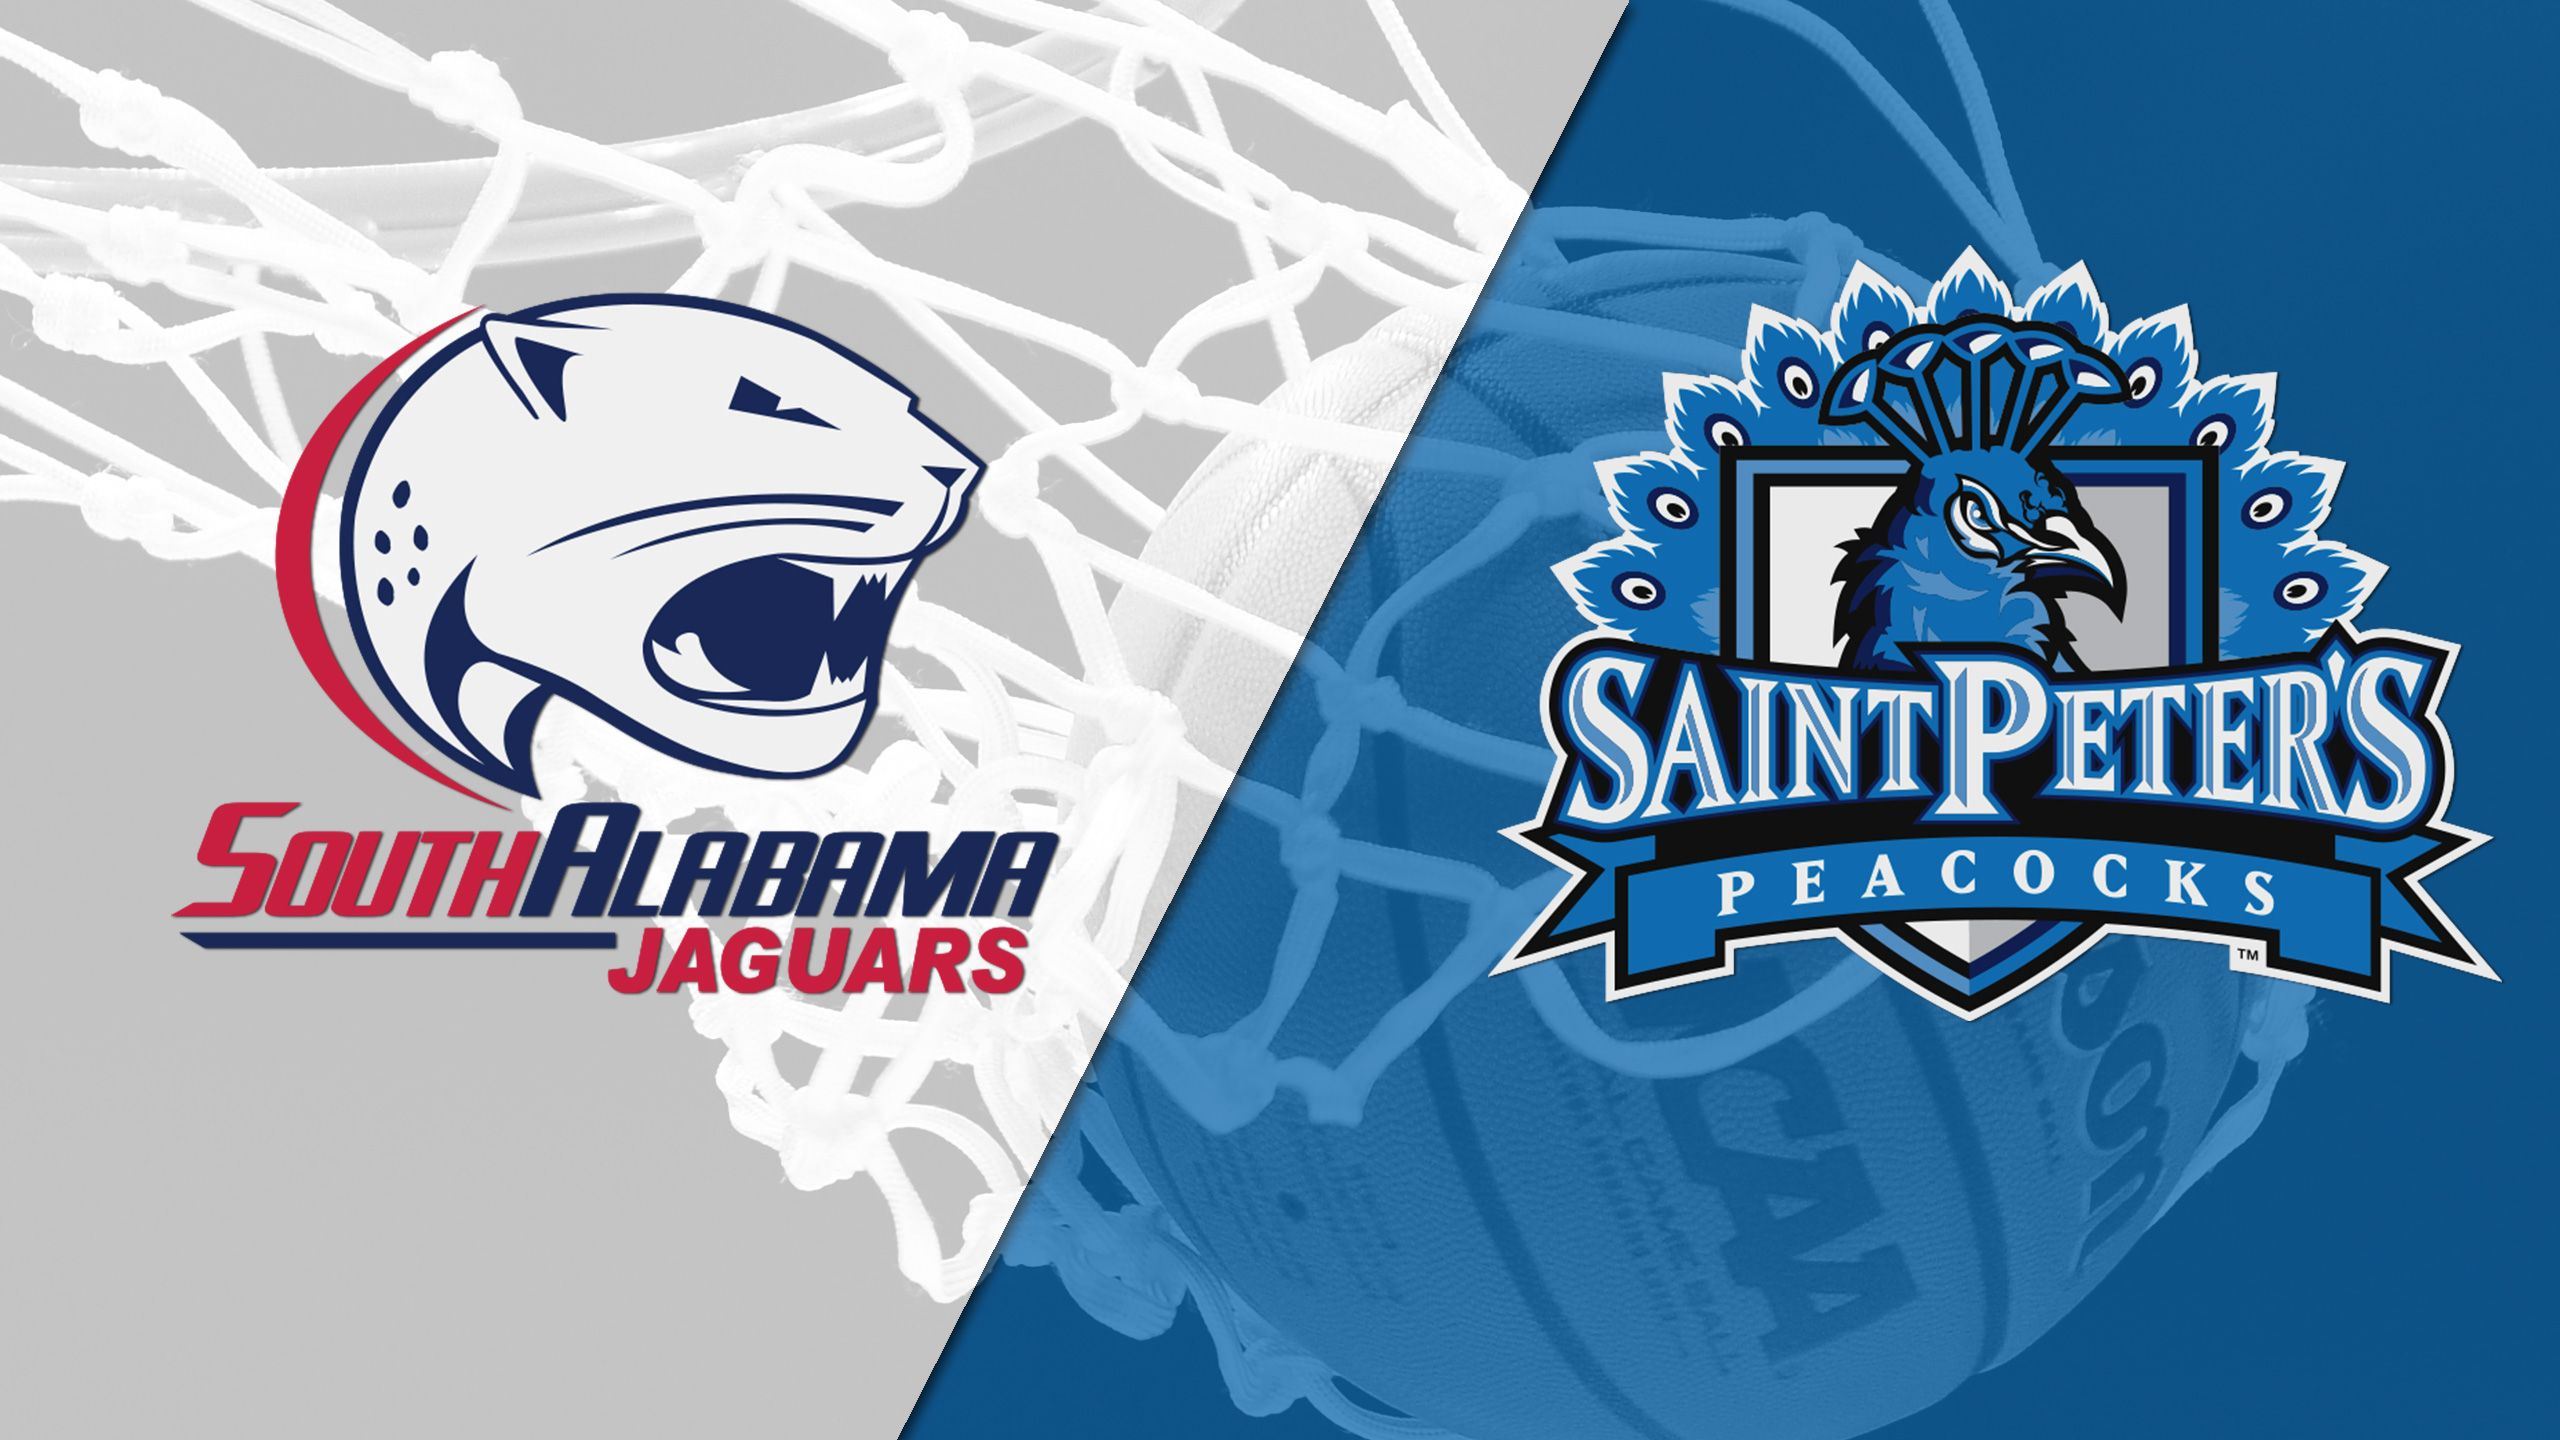 South Alabama vs. Saint Peter's (Championship) (Hall of Fame Tip-Off)